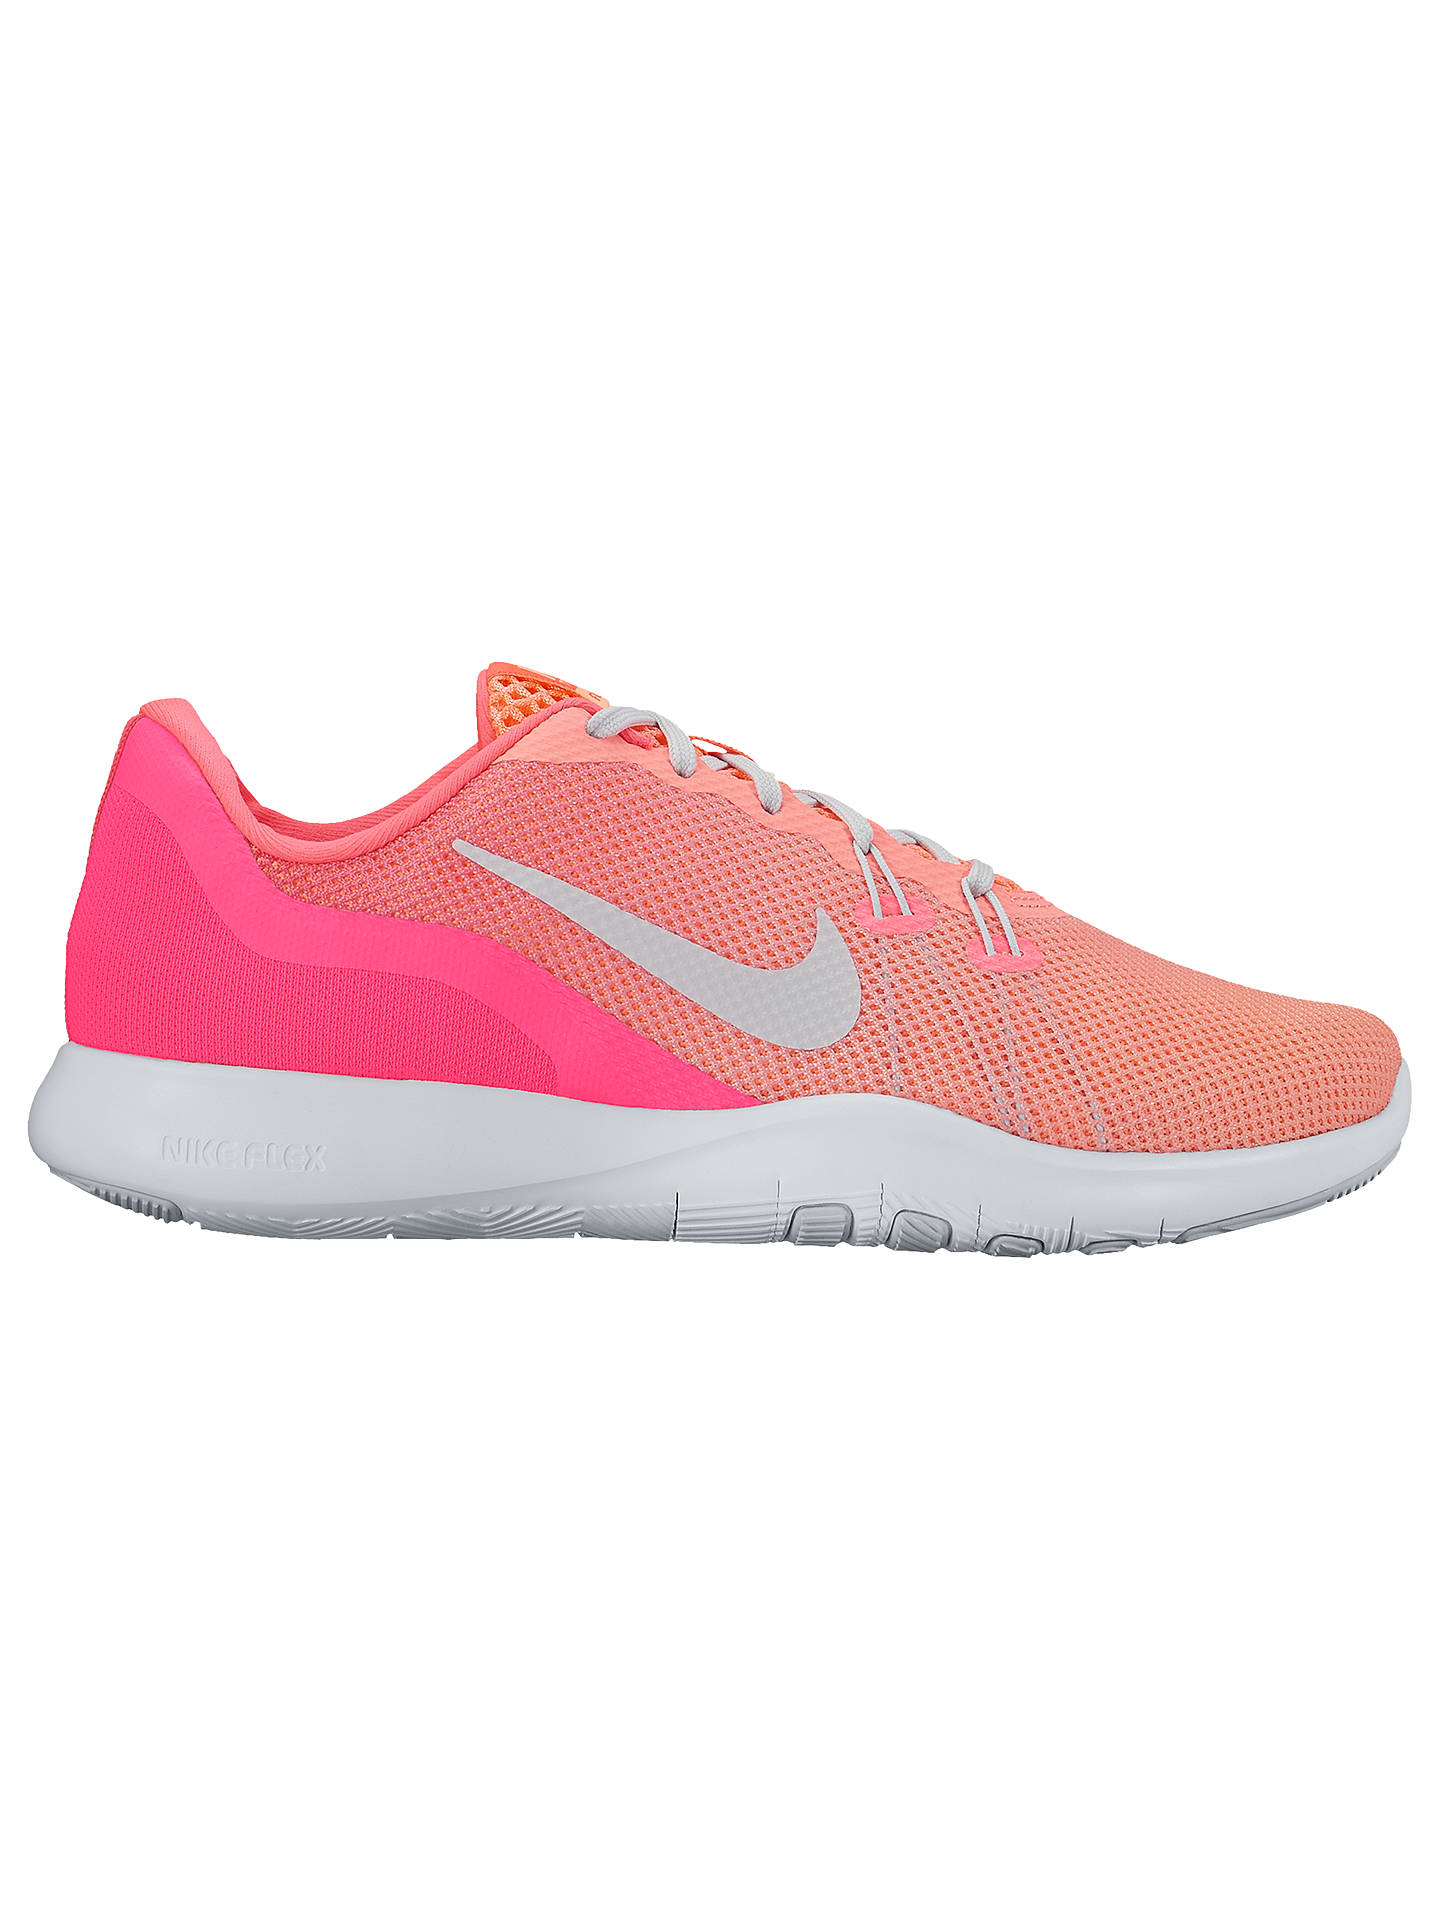 27340baead121 Buy Nike Flex Trainer 7 Fade Women's Cross Trainers, Pink/Silver, 4 Online  ...